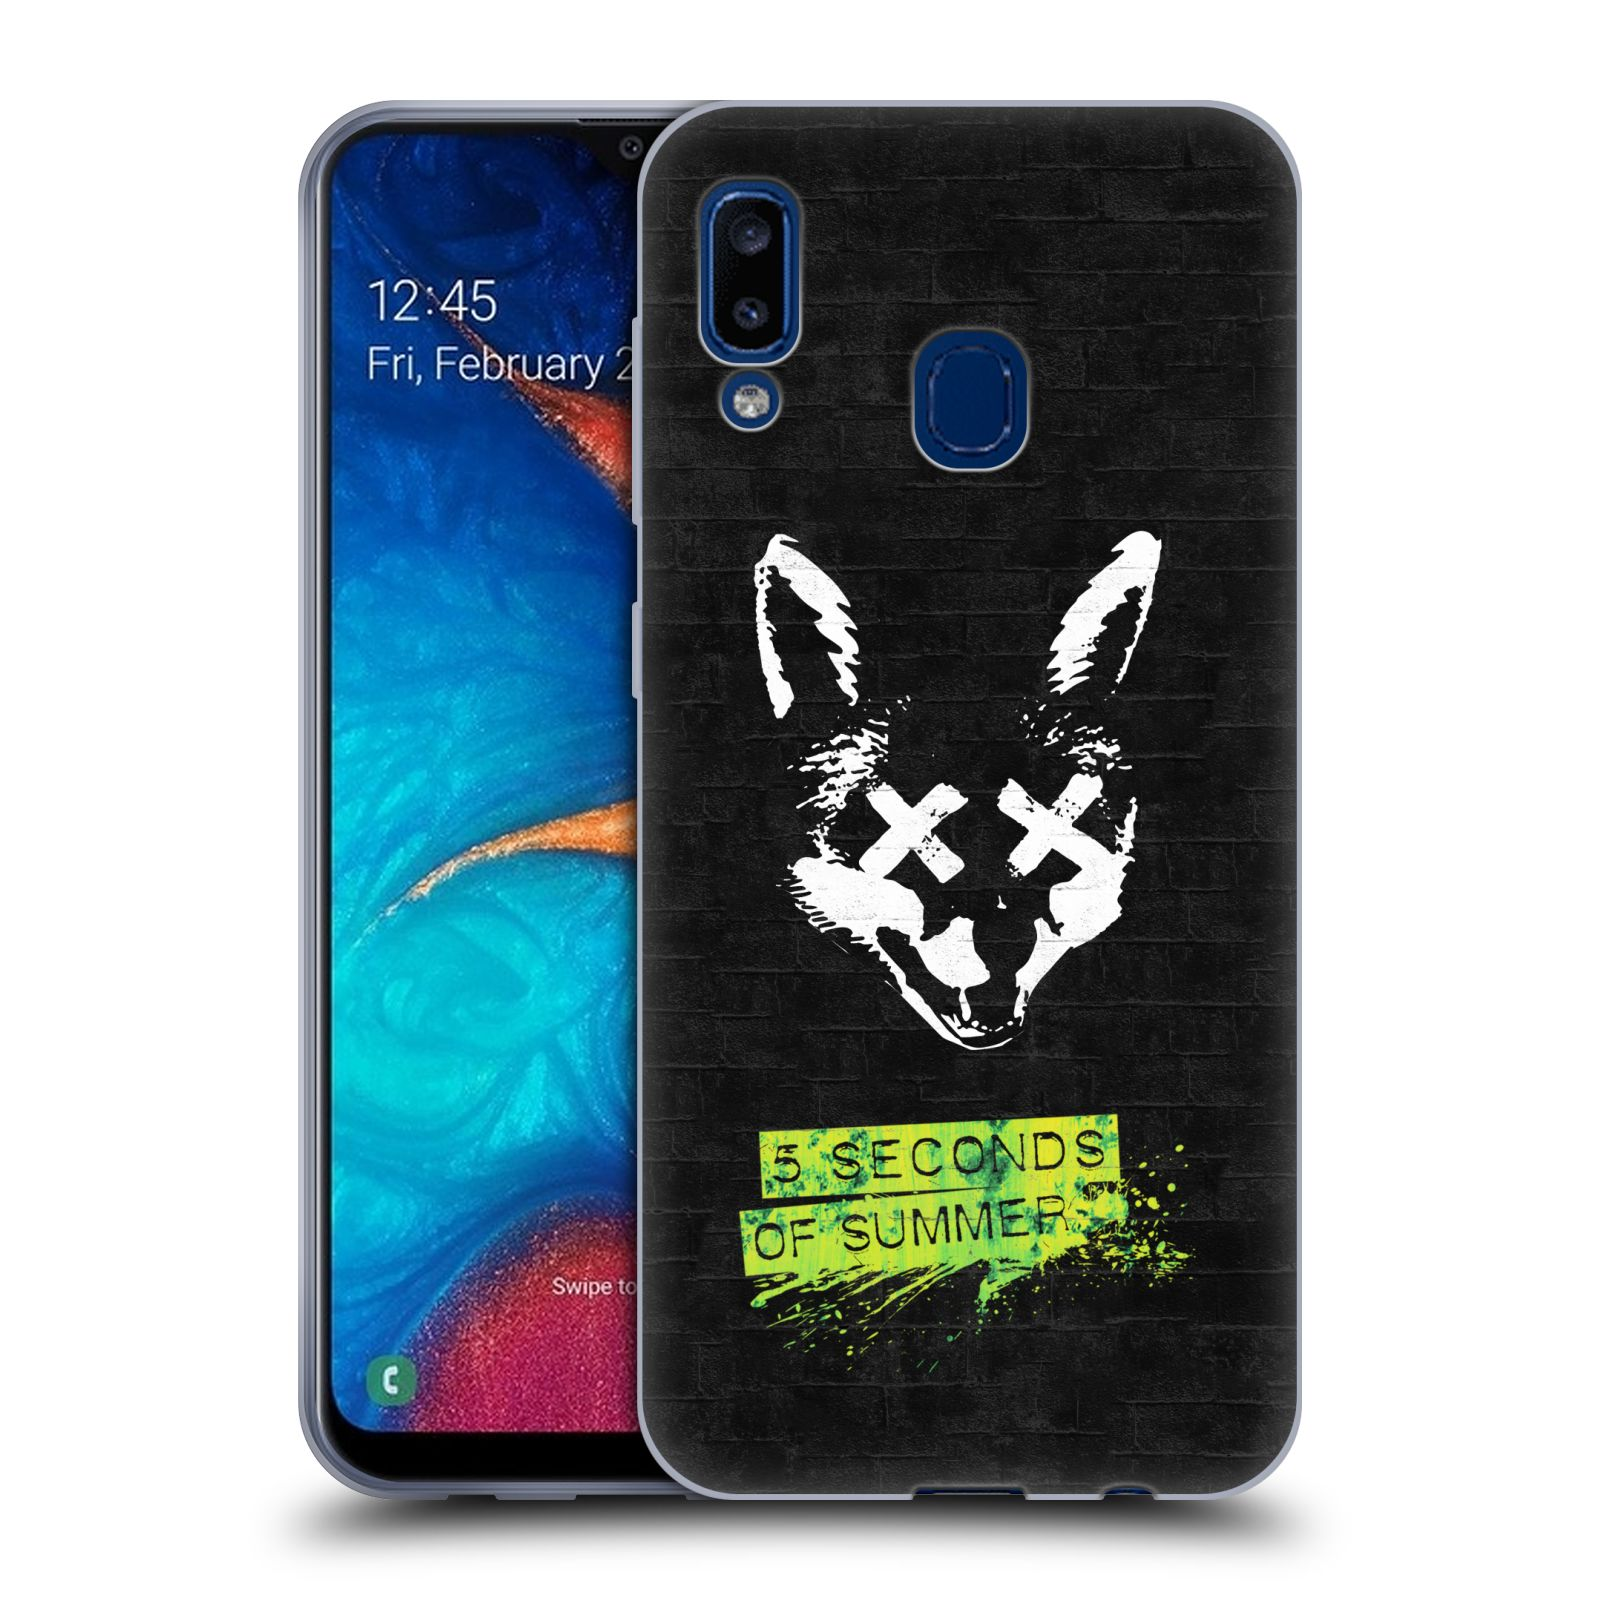 Silikonové pouzdro na mobil Samsung Galaxy A20 - Head Case - 5 Seconds of Summer - Fox